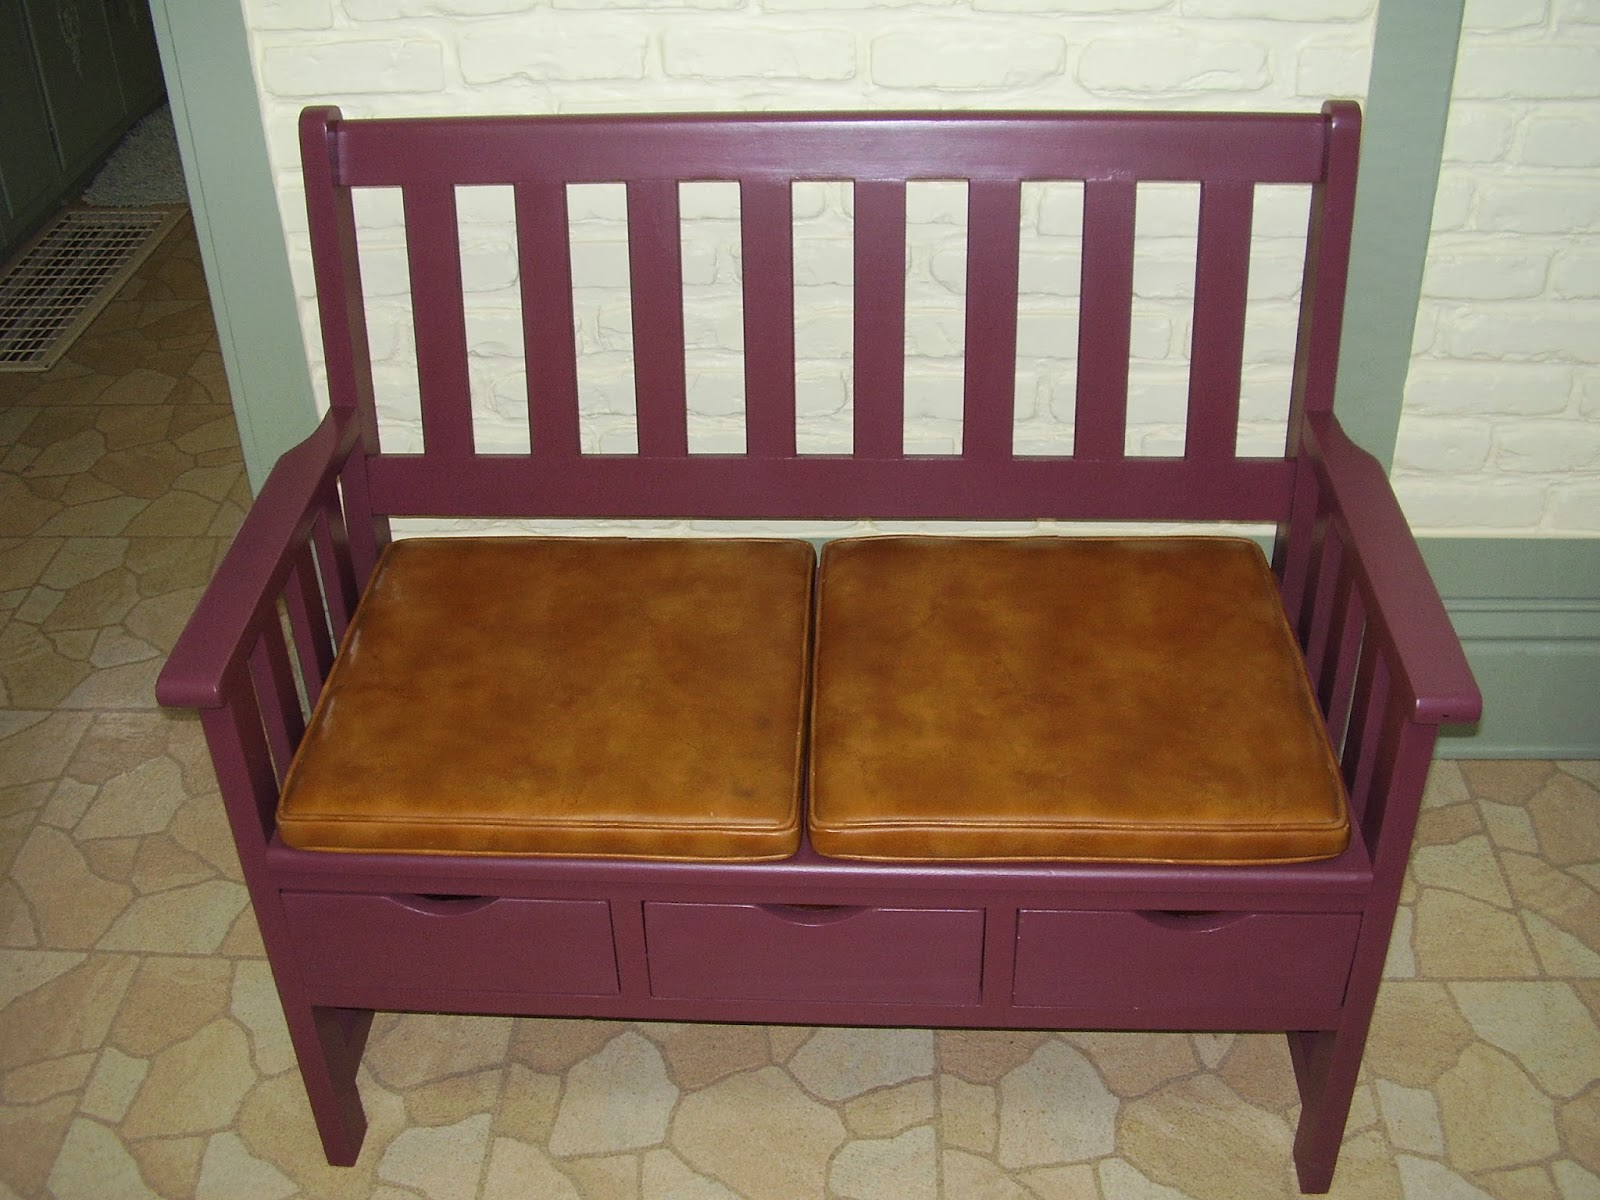 #91643A  Wood Bench With Cushion For Foyer Entryway Or Whatever  $110  SOLD with 1600x1200 px of Most Effective Entryway Bench Cushions 12001600 wallpaper @ avoidforclosure.info